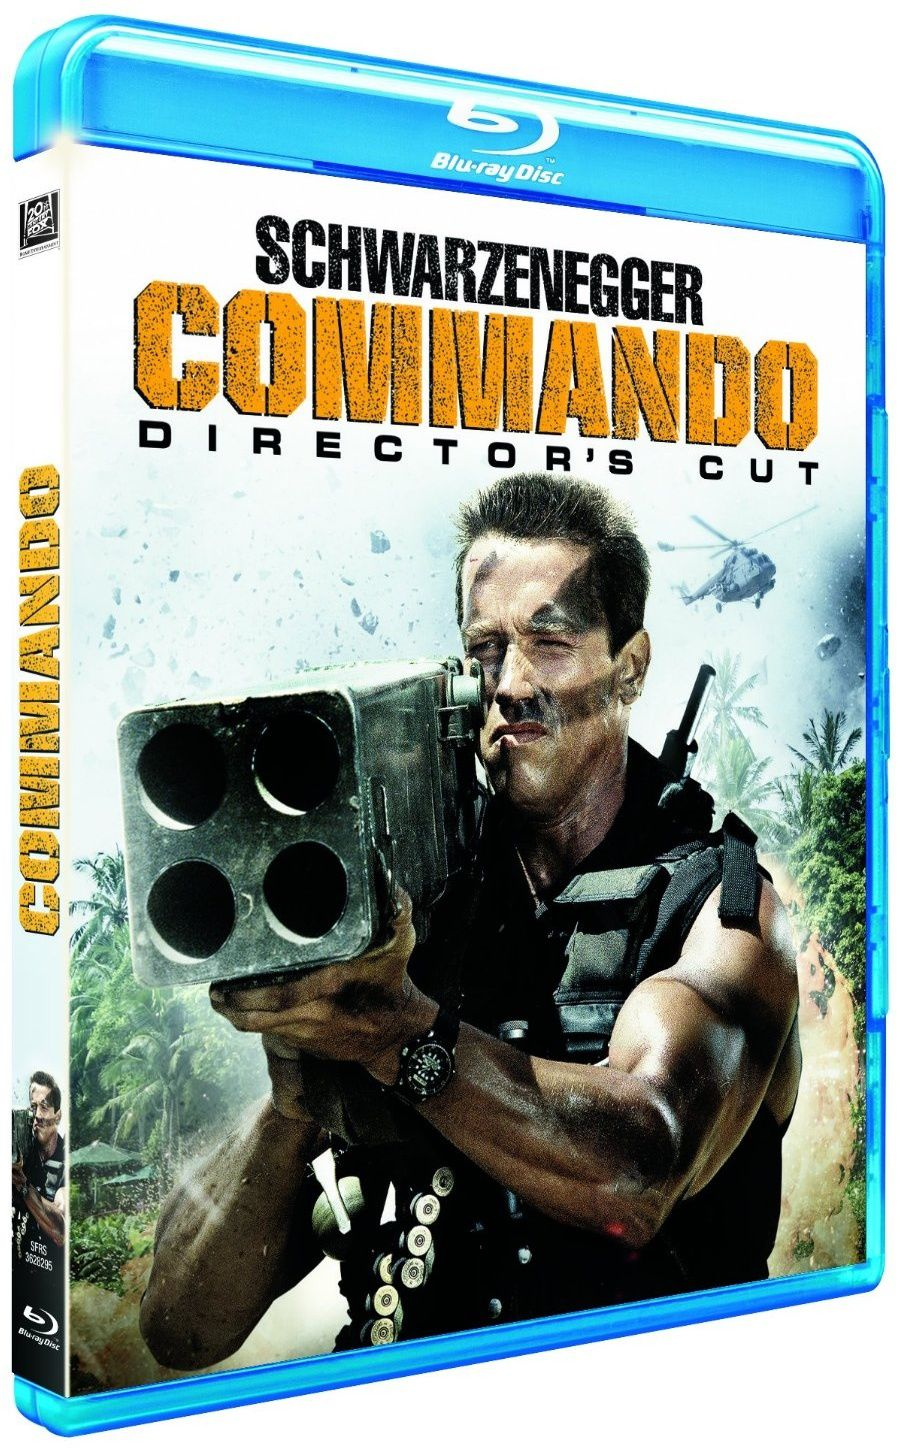 Commando en blu-ray version director's cut